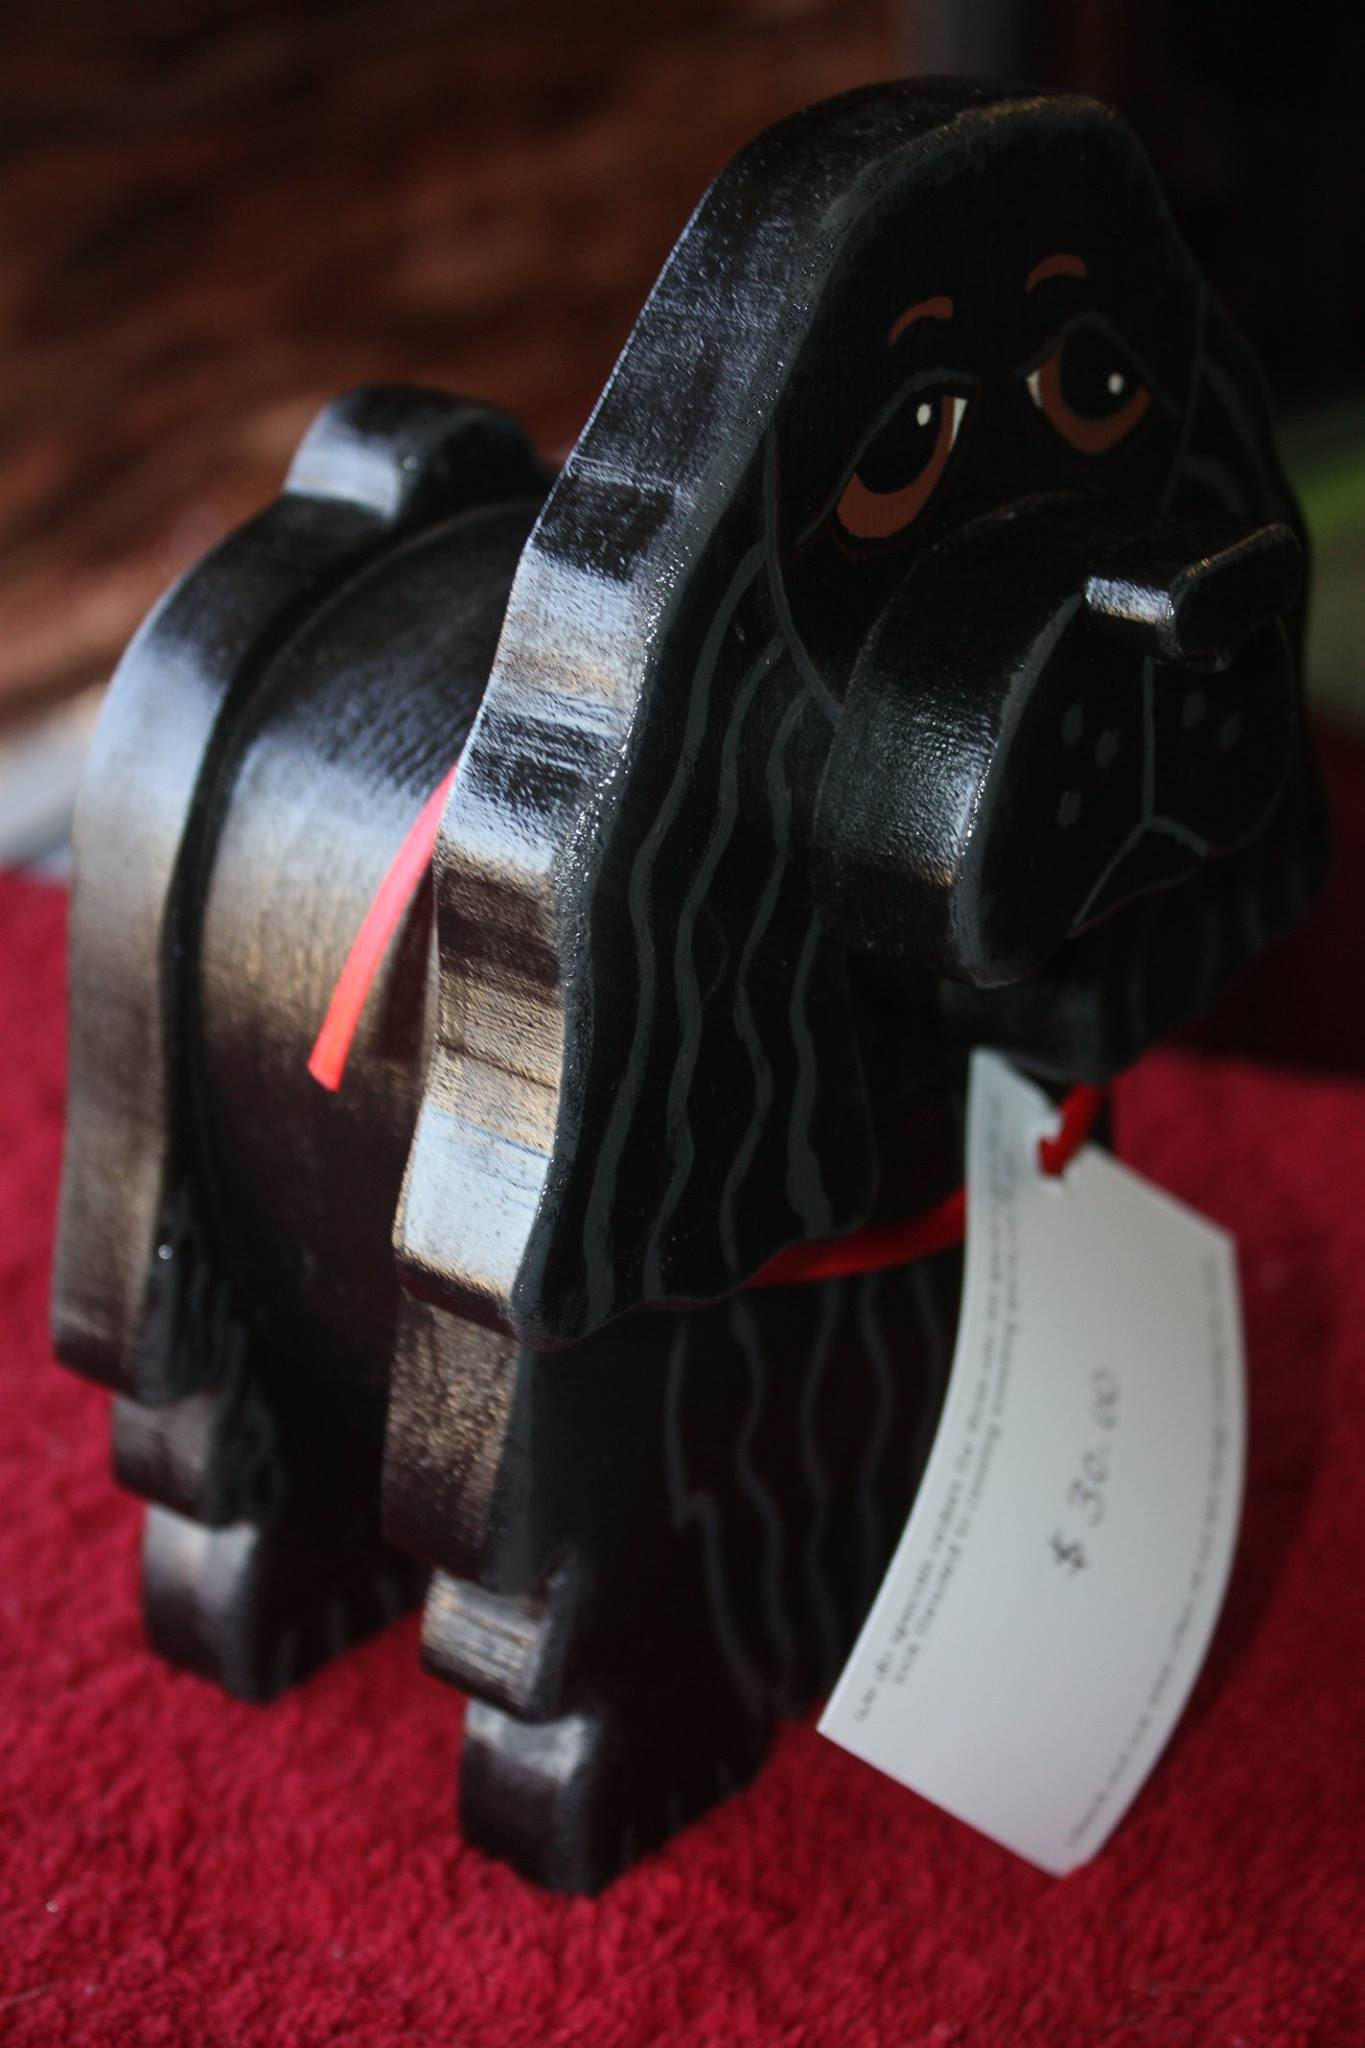 The Animals can be customized to look like your personal animals when ordered through S & S Wood Creations Etsy page,or you can buy this black beauty at the FOPAS Second hand shop for $30.00. 50% of the wood creations sold from the shelters profits go to the animals.